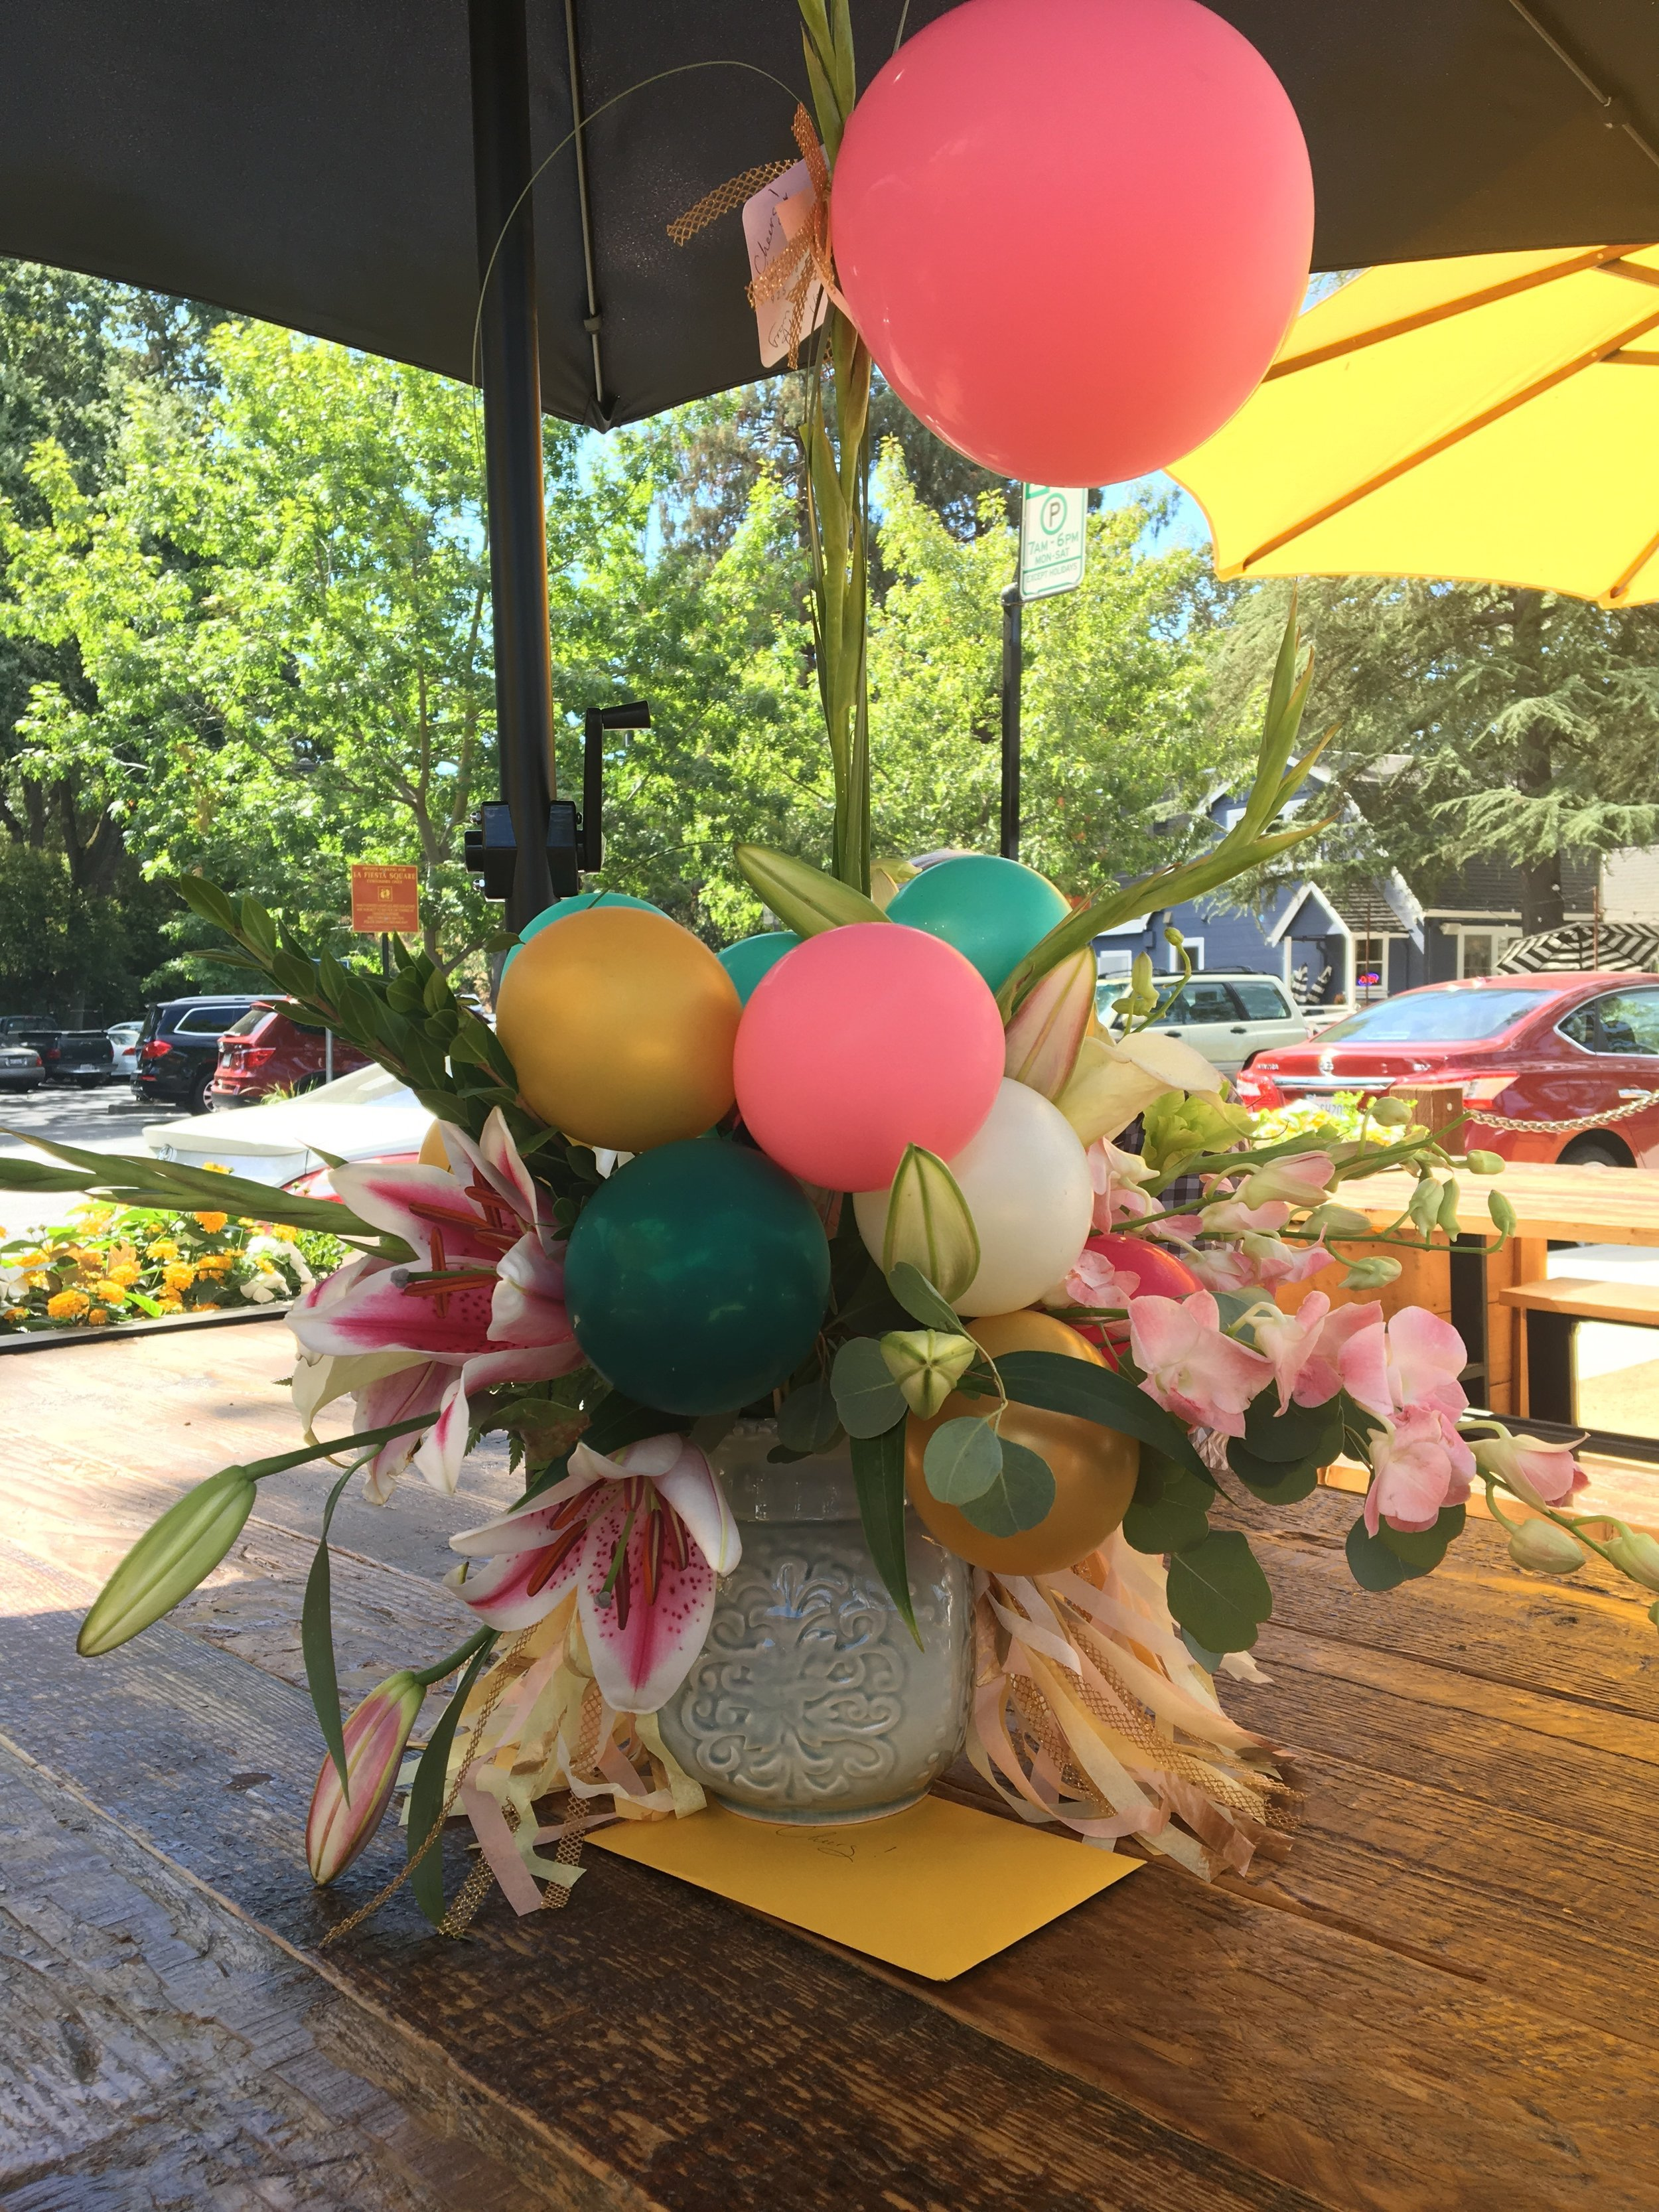 Yes, Please! - Balloons and Blooms makes a fabulous statement!